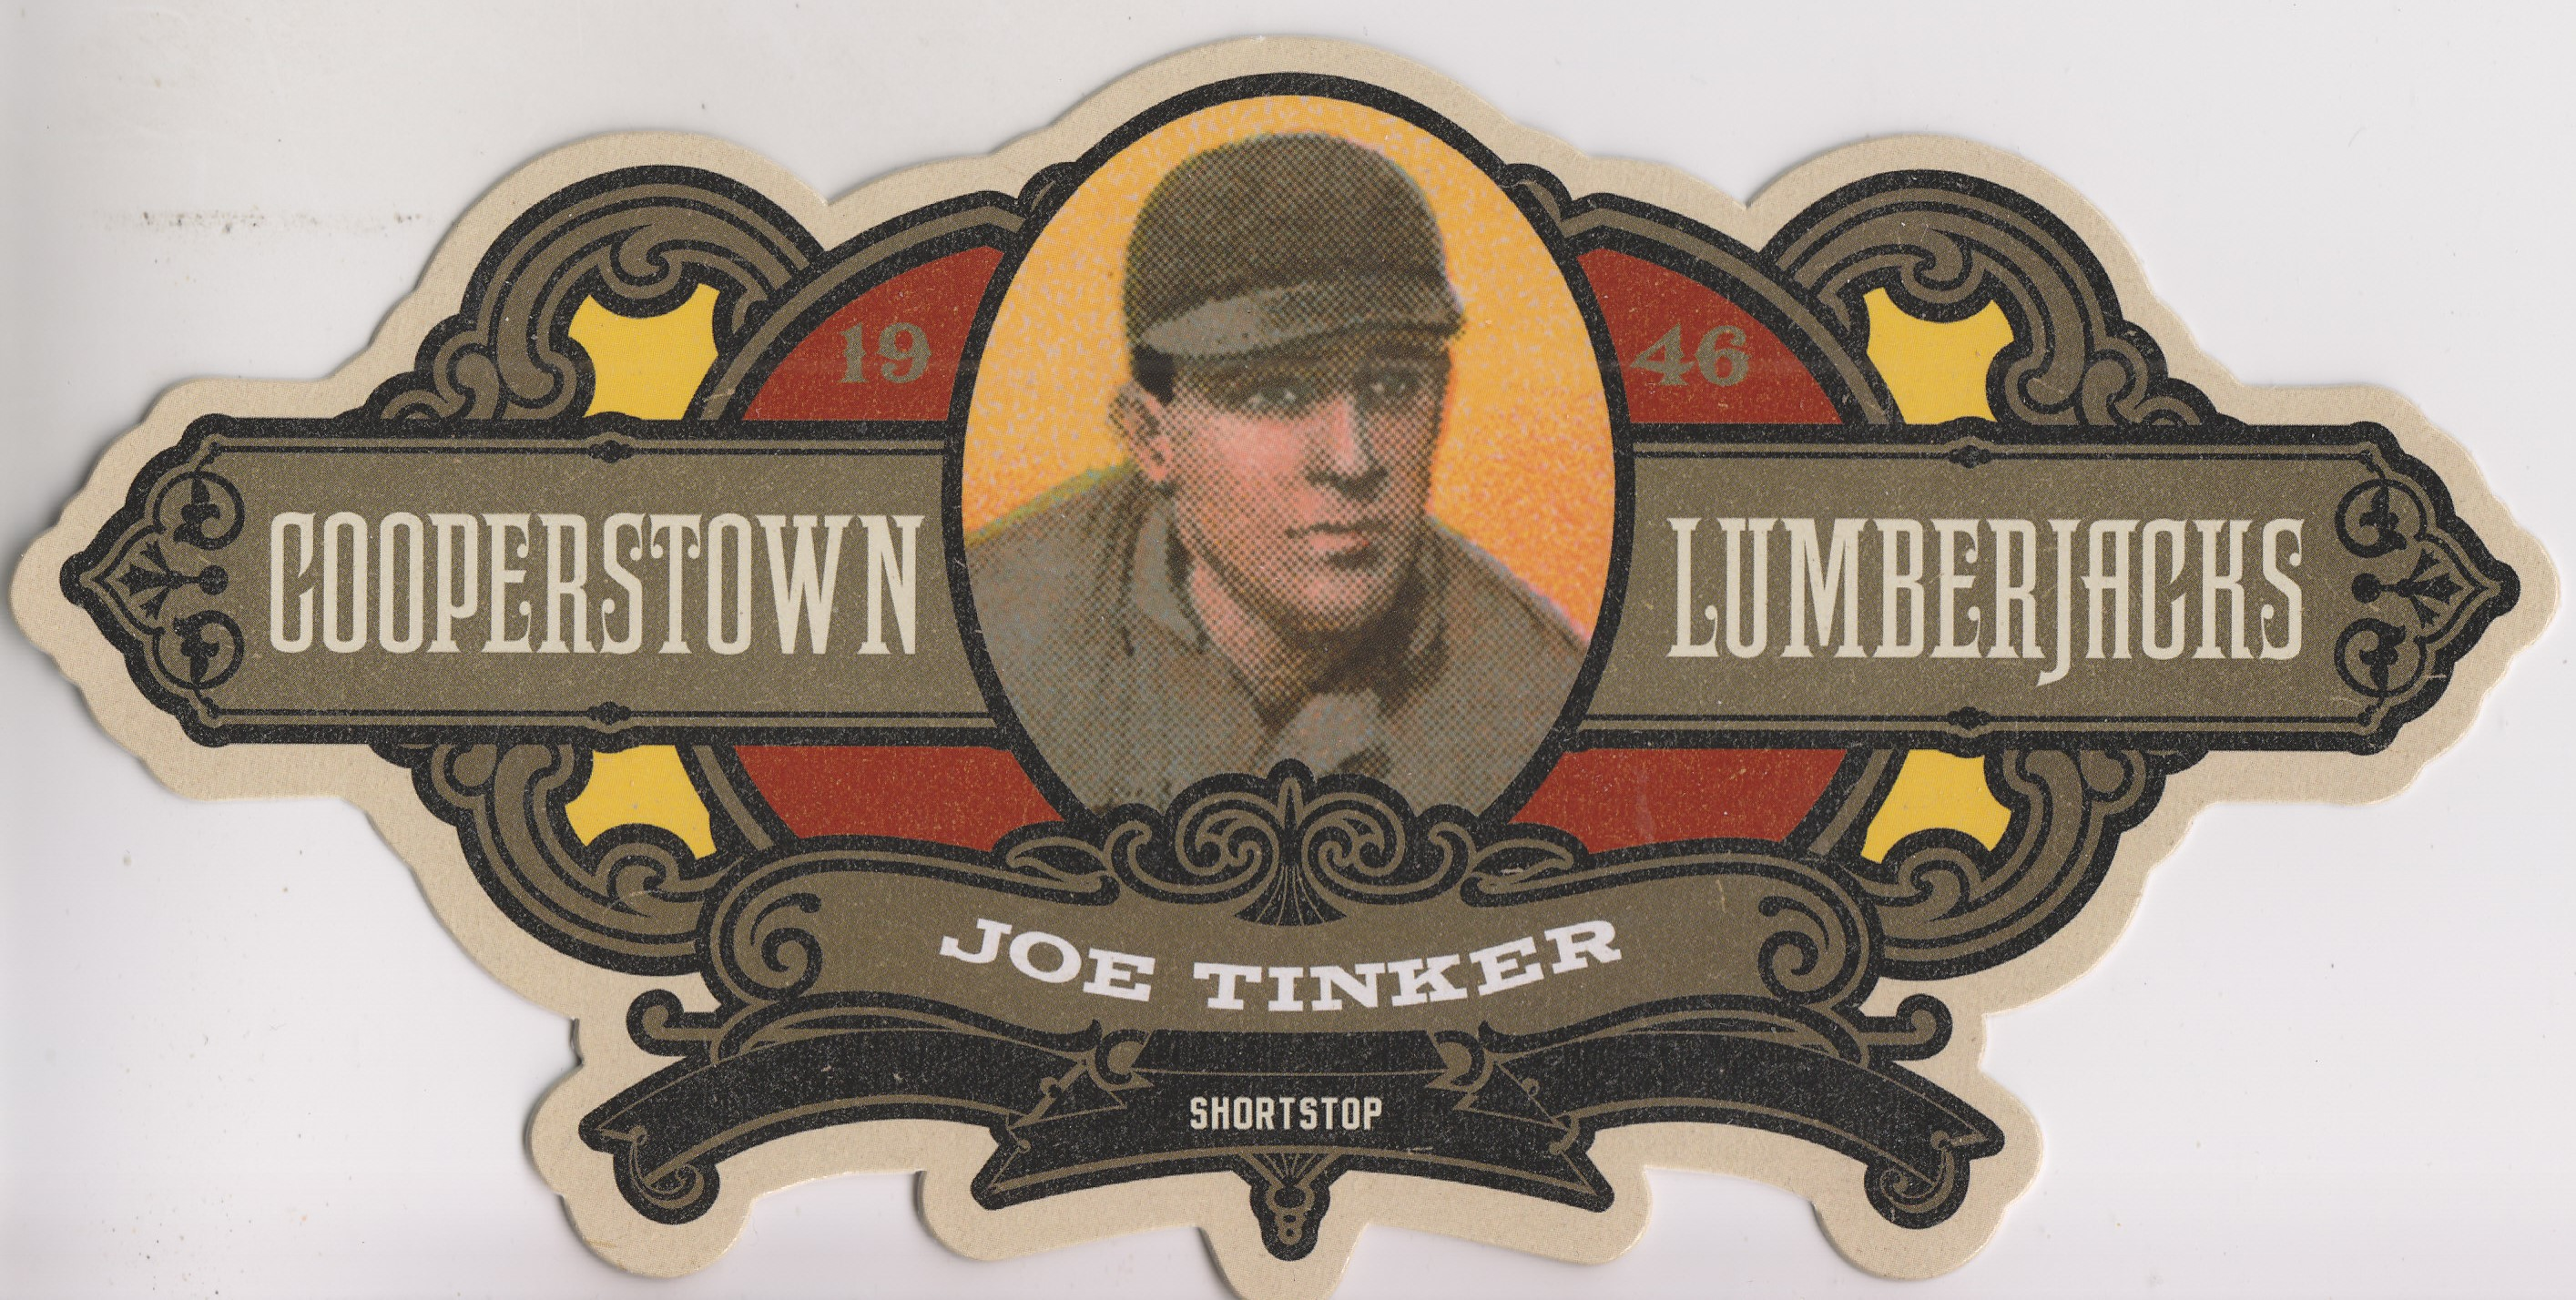 2013 Panini Cooperstown Lumberjacks Die Cut #20 Joe Tinker